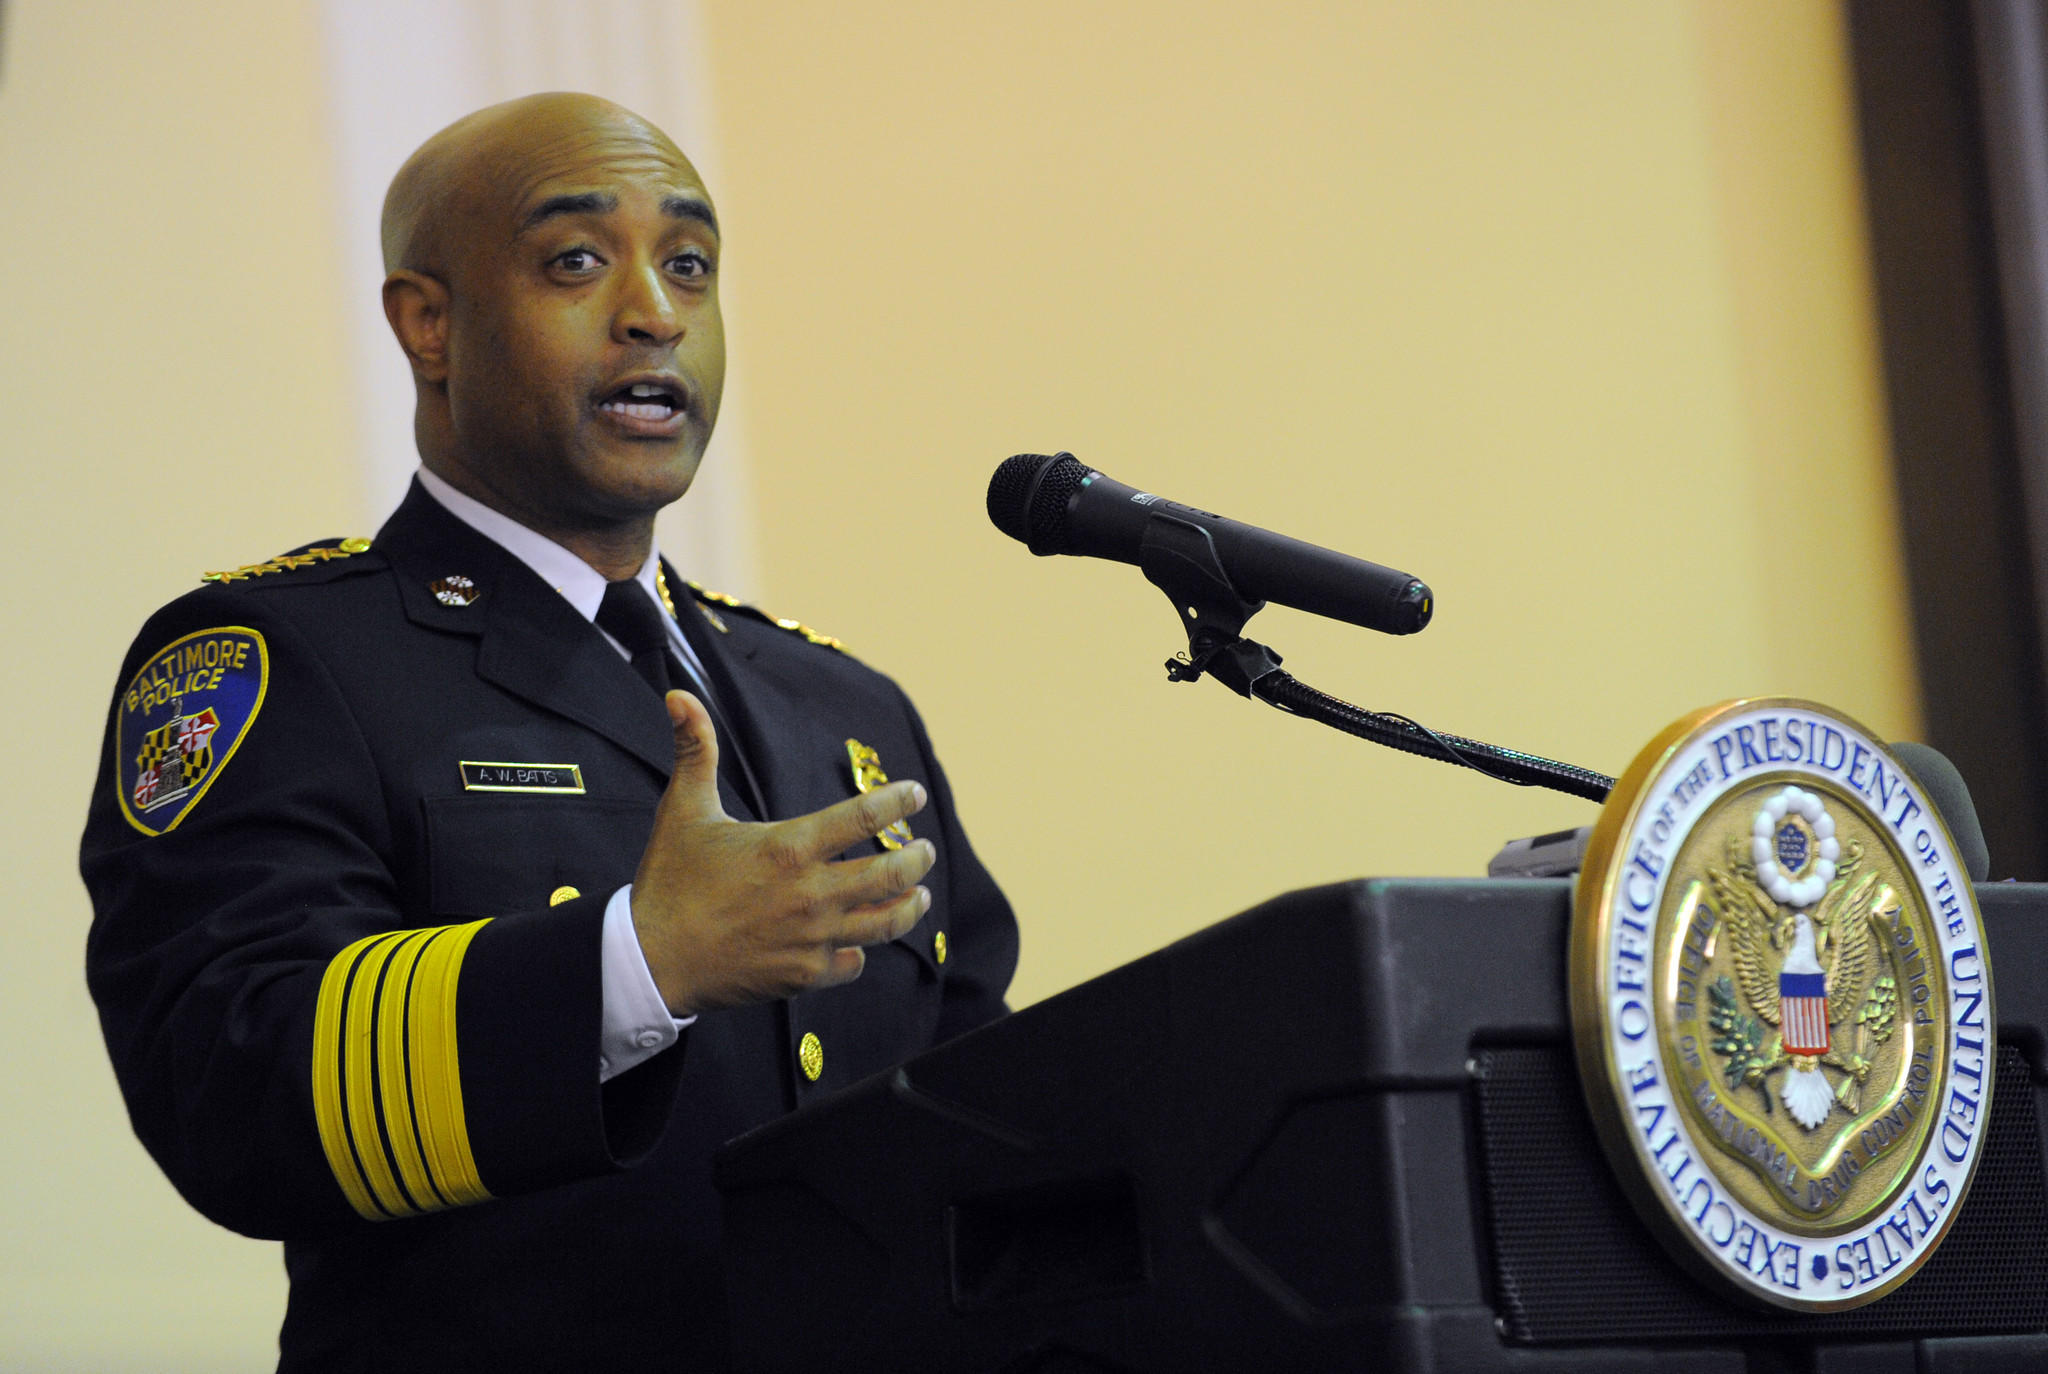 Baltimore Police Commissioner Anthony W. Batts speaks in this Baltimore Sun file photo.